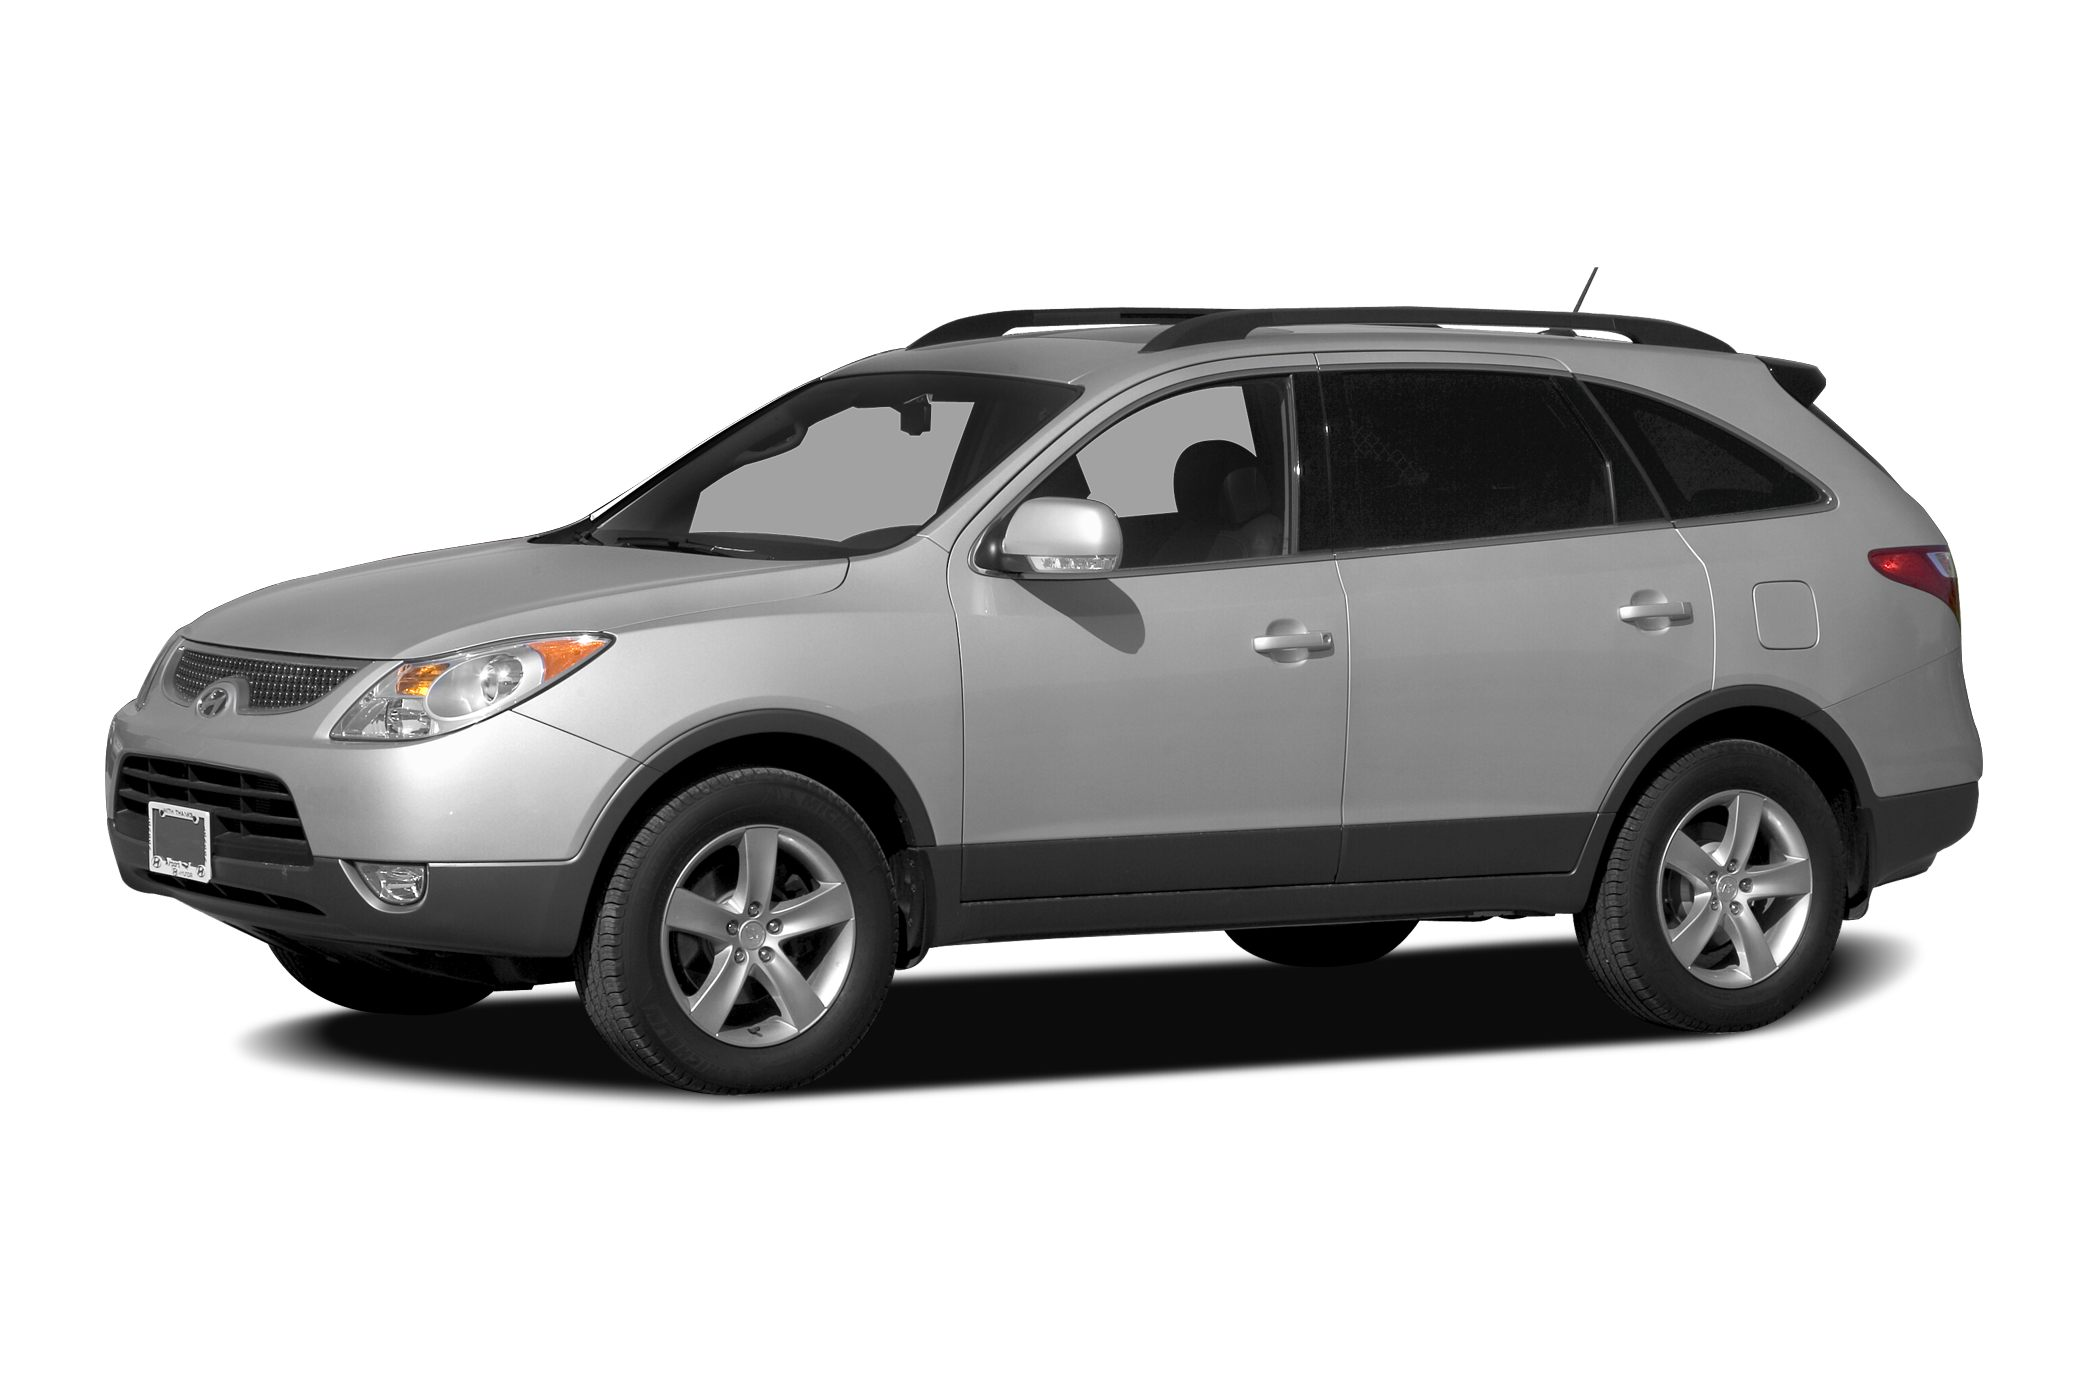 2008 Hyundai Veracruz SE SUV for sale in Lilburn for $14,999 with 45,221 miles.